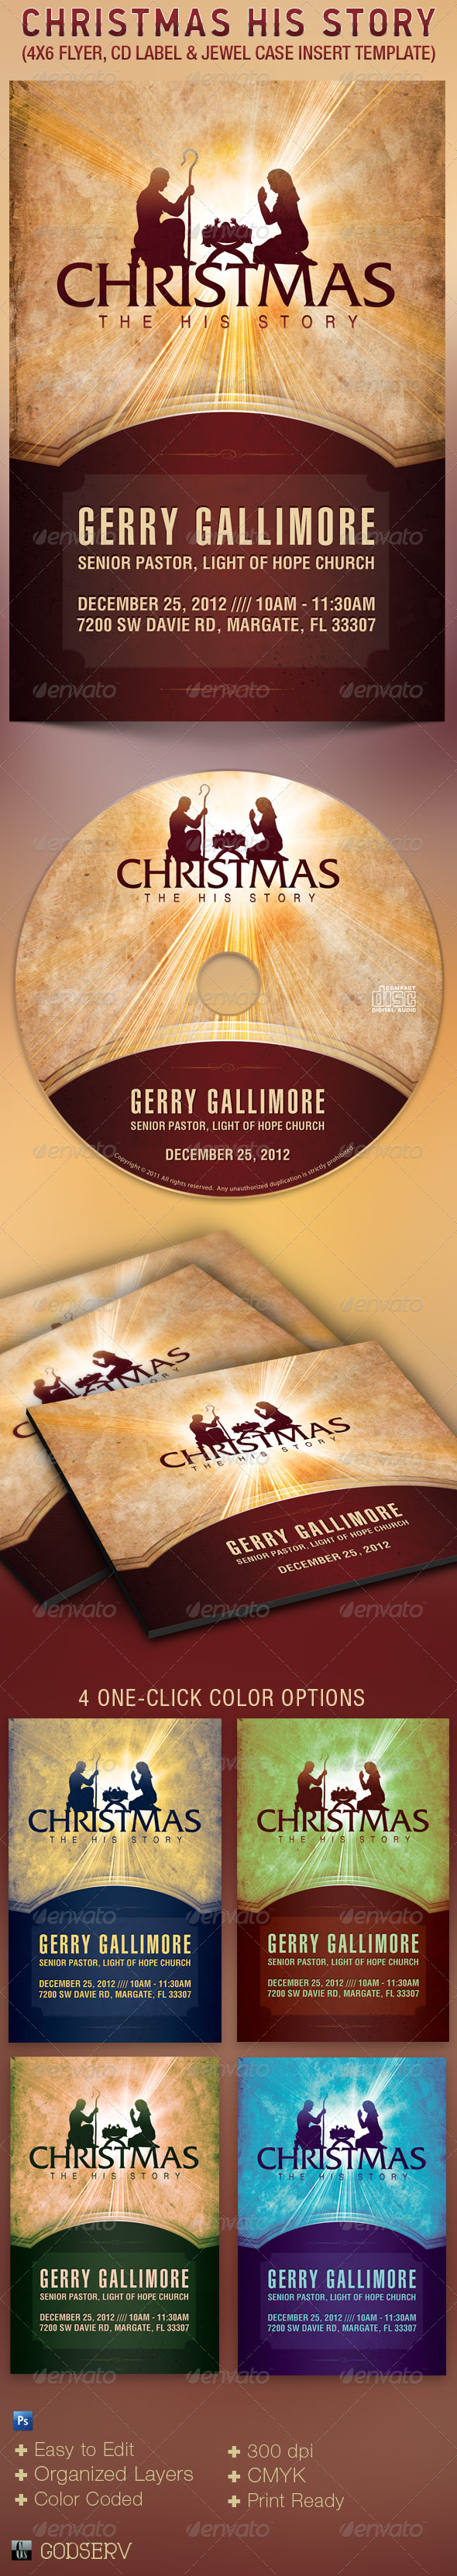 Graphic River Christmas His Story Flyer and CD Template Print Templates -  Flyers  Church 941229